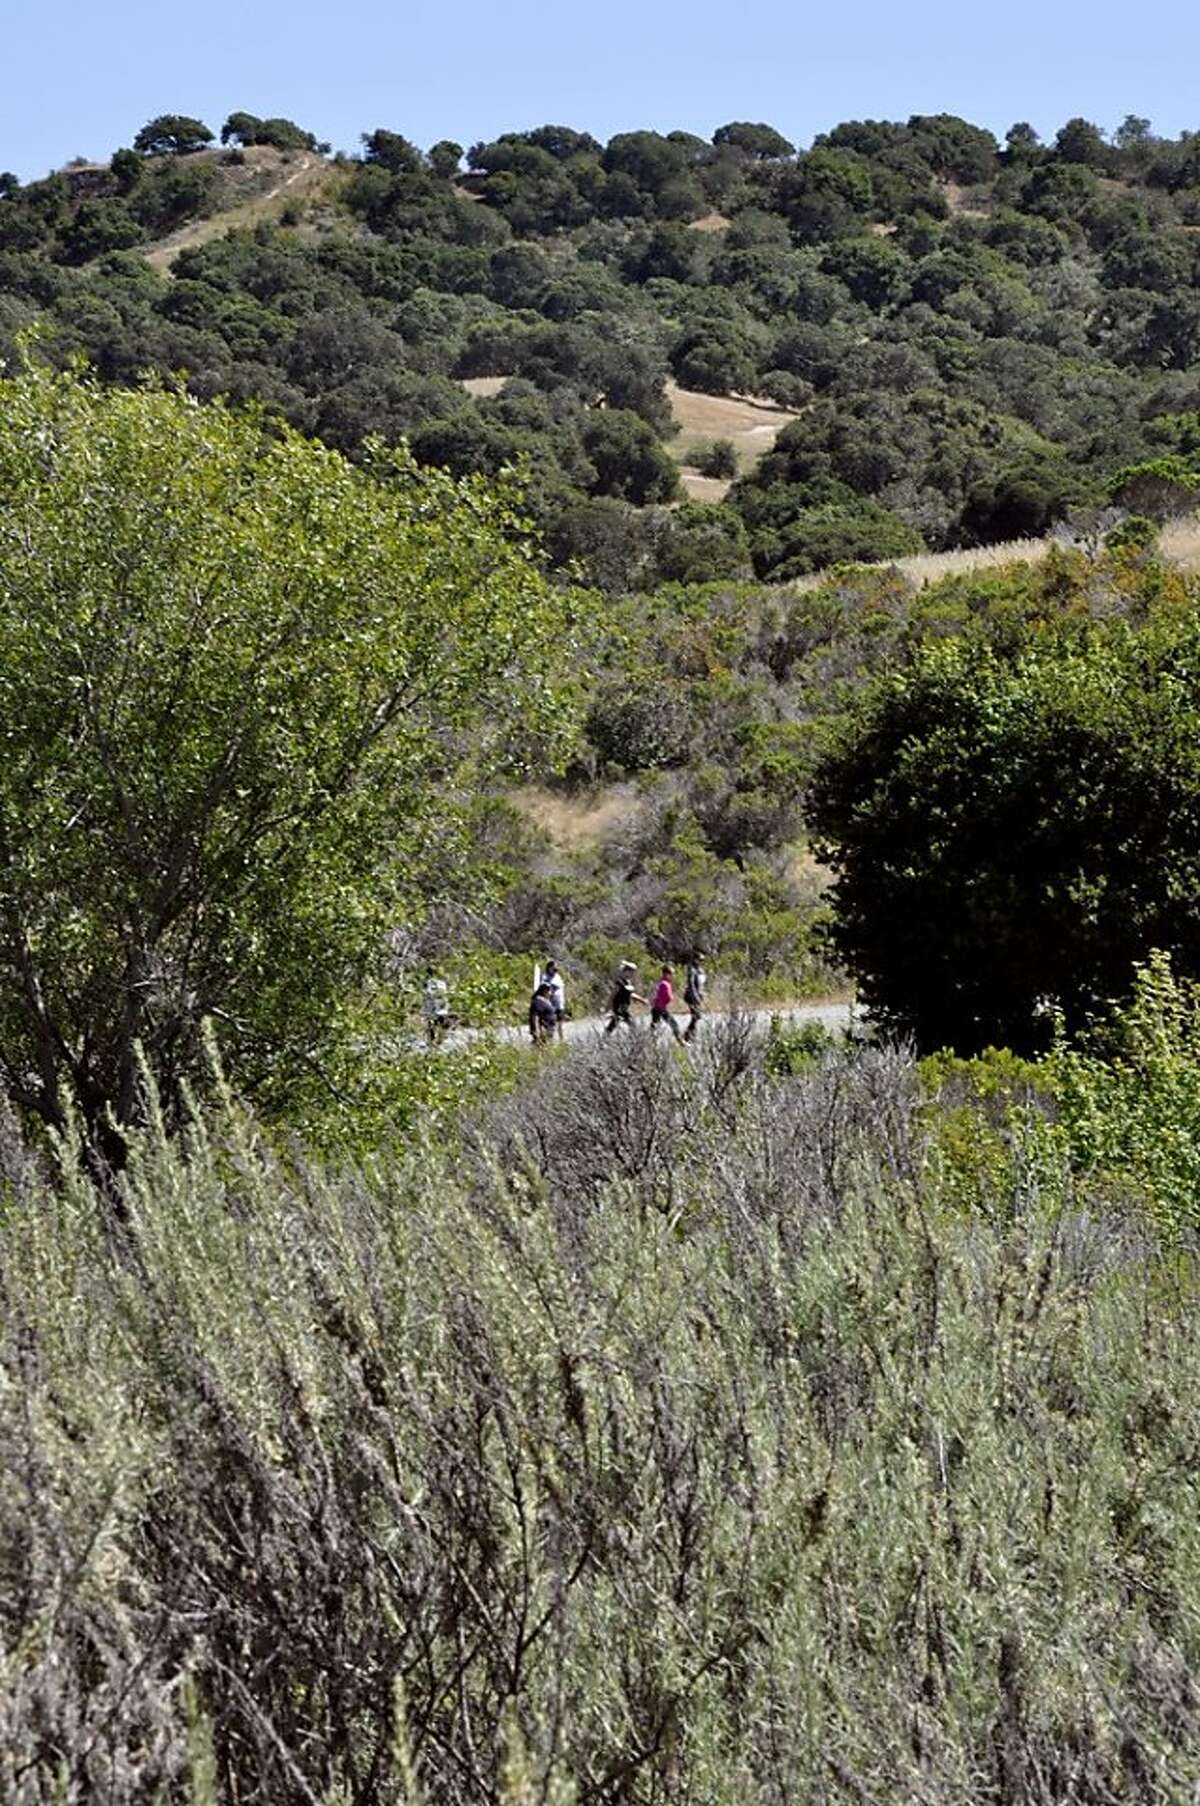 Many hikers opt for the wider, paved road to take them to other trails deeper inside Fort Ord from the Creekside Trail access.